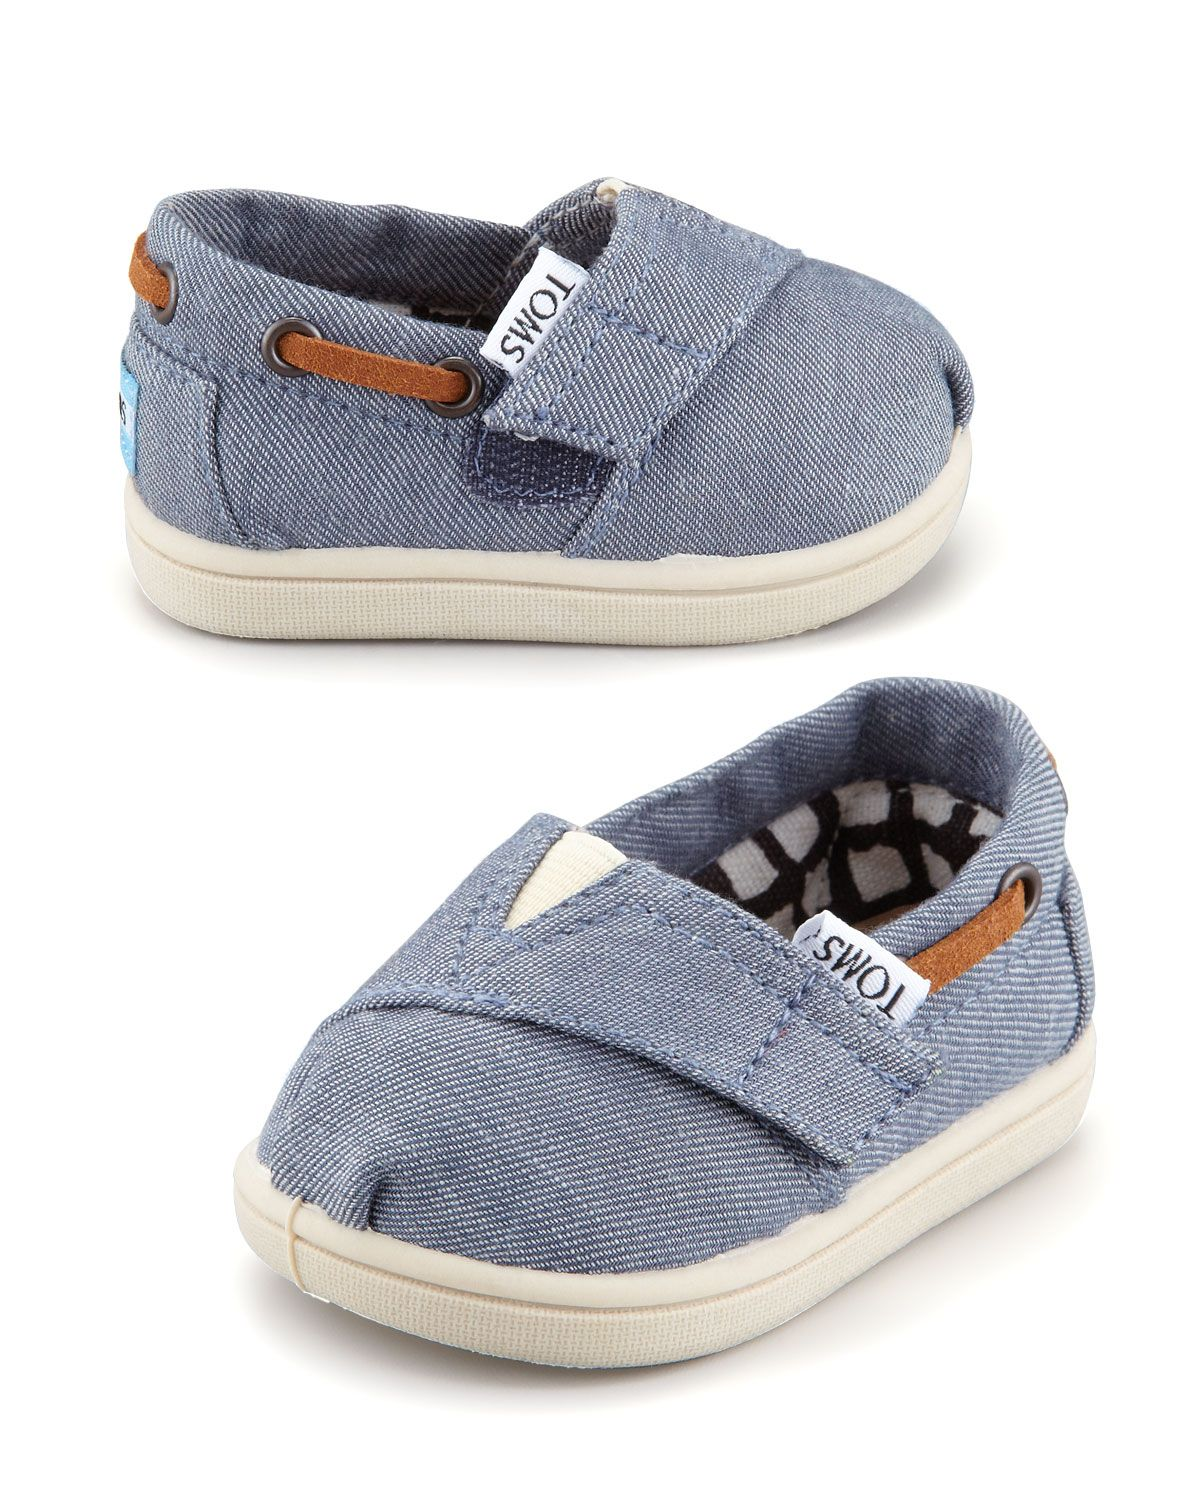 Humor Toms Romper Shoes In Blue In Style; Infant Size 9 Fashionable